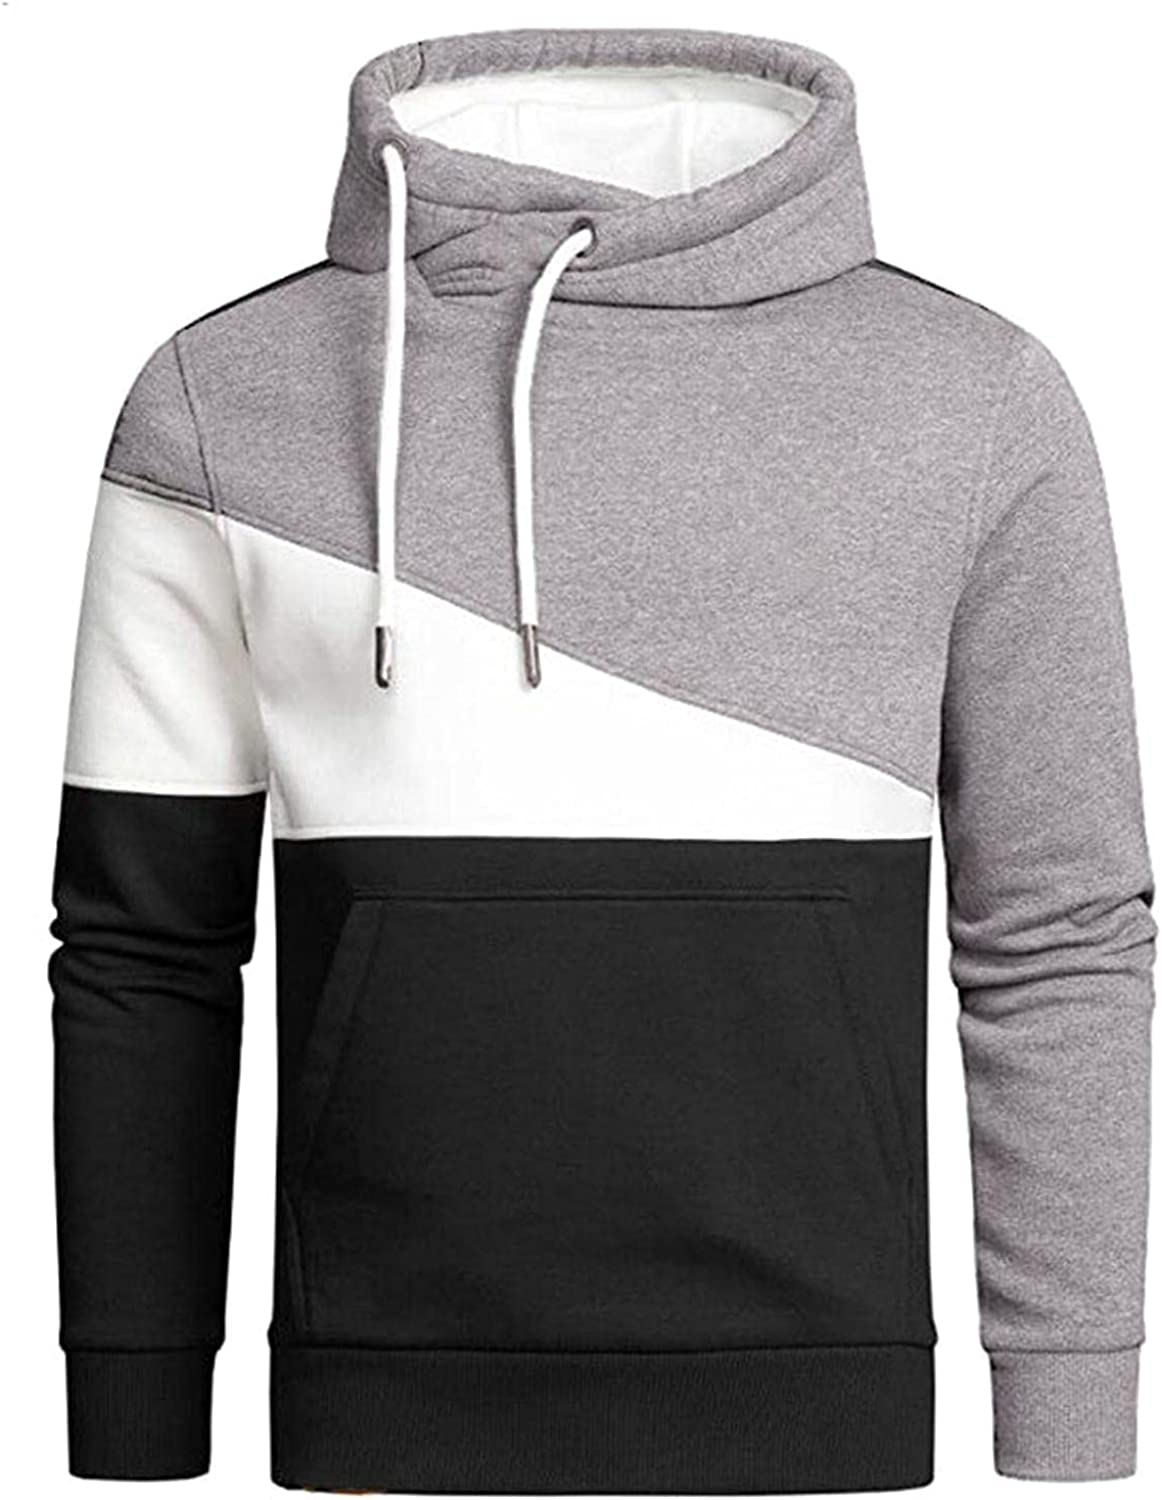 Aayomet Men's Hoodies Sweatshirts Fashion Patchwork Tops Long Sleeve Casual Athletic Hooded Pullover Shirts Blouses for Men